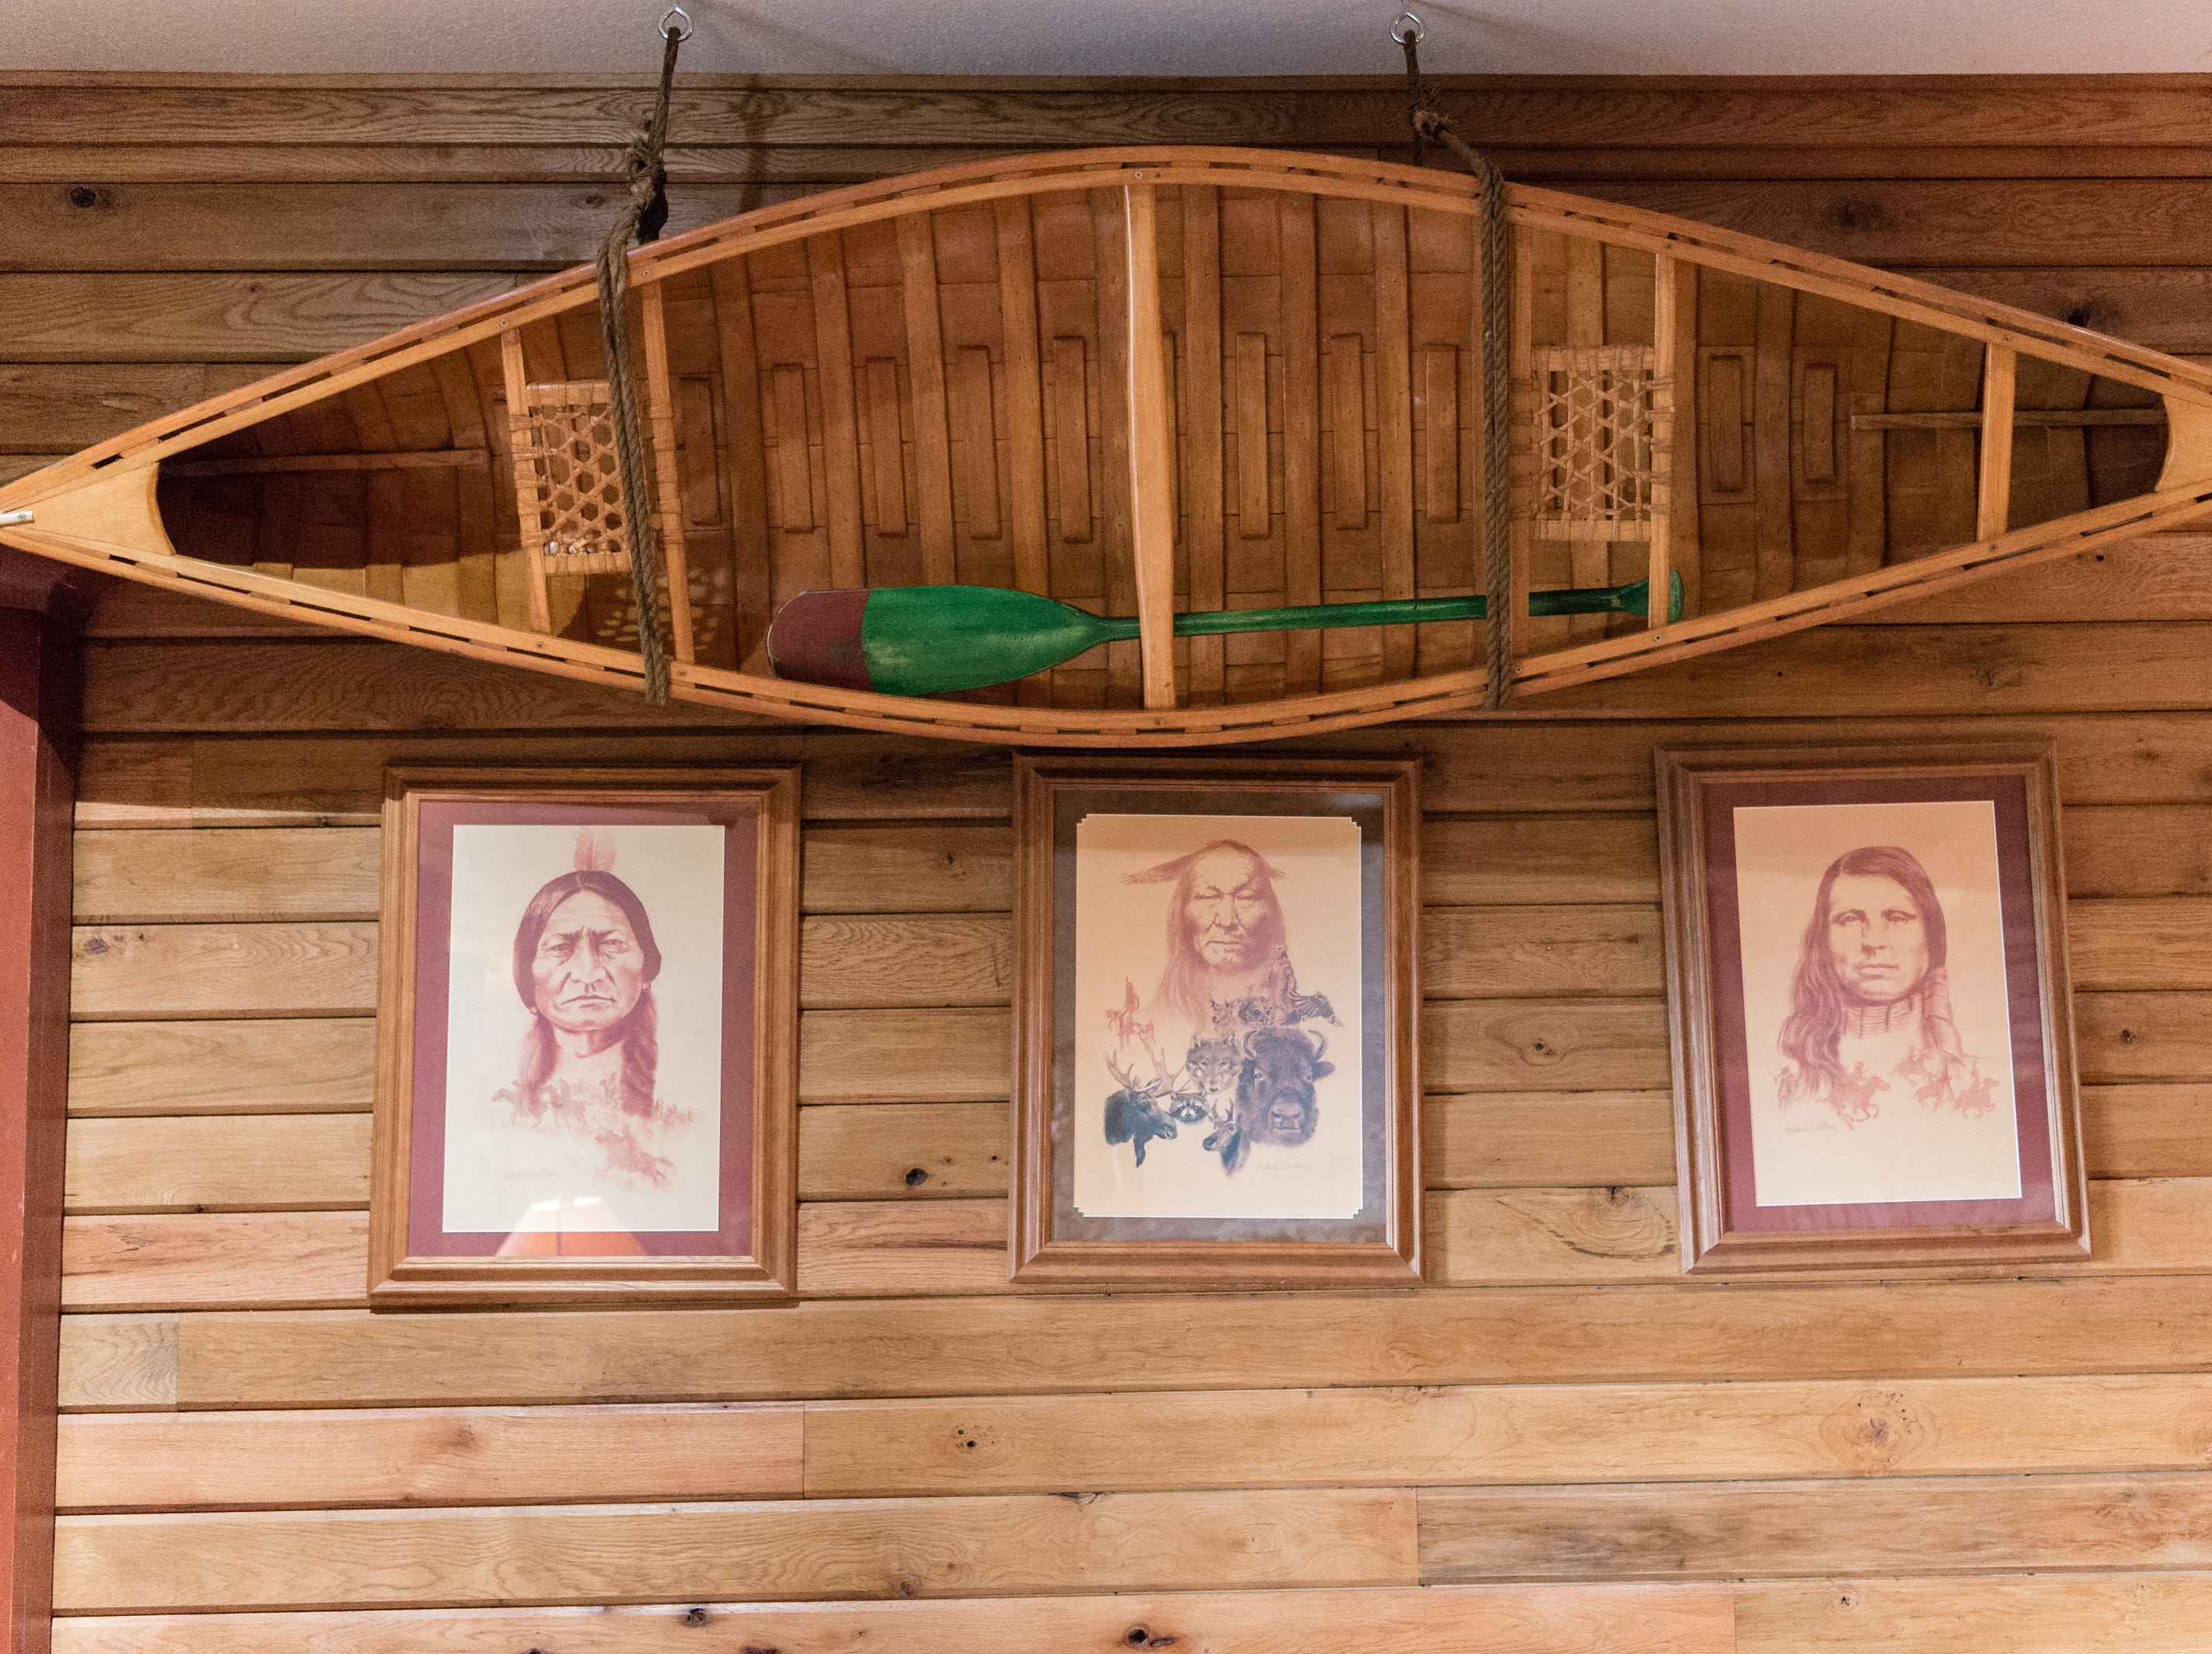 A wooden canoe hanging over three portraits of Native Americans in Dan and Belle Fangmeyer's log cabin in Waynesville.